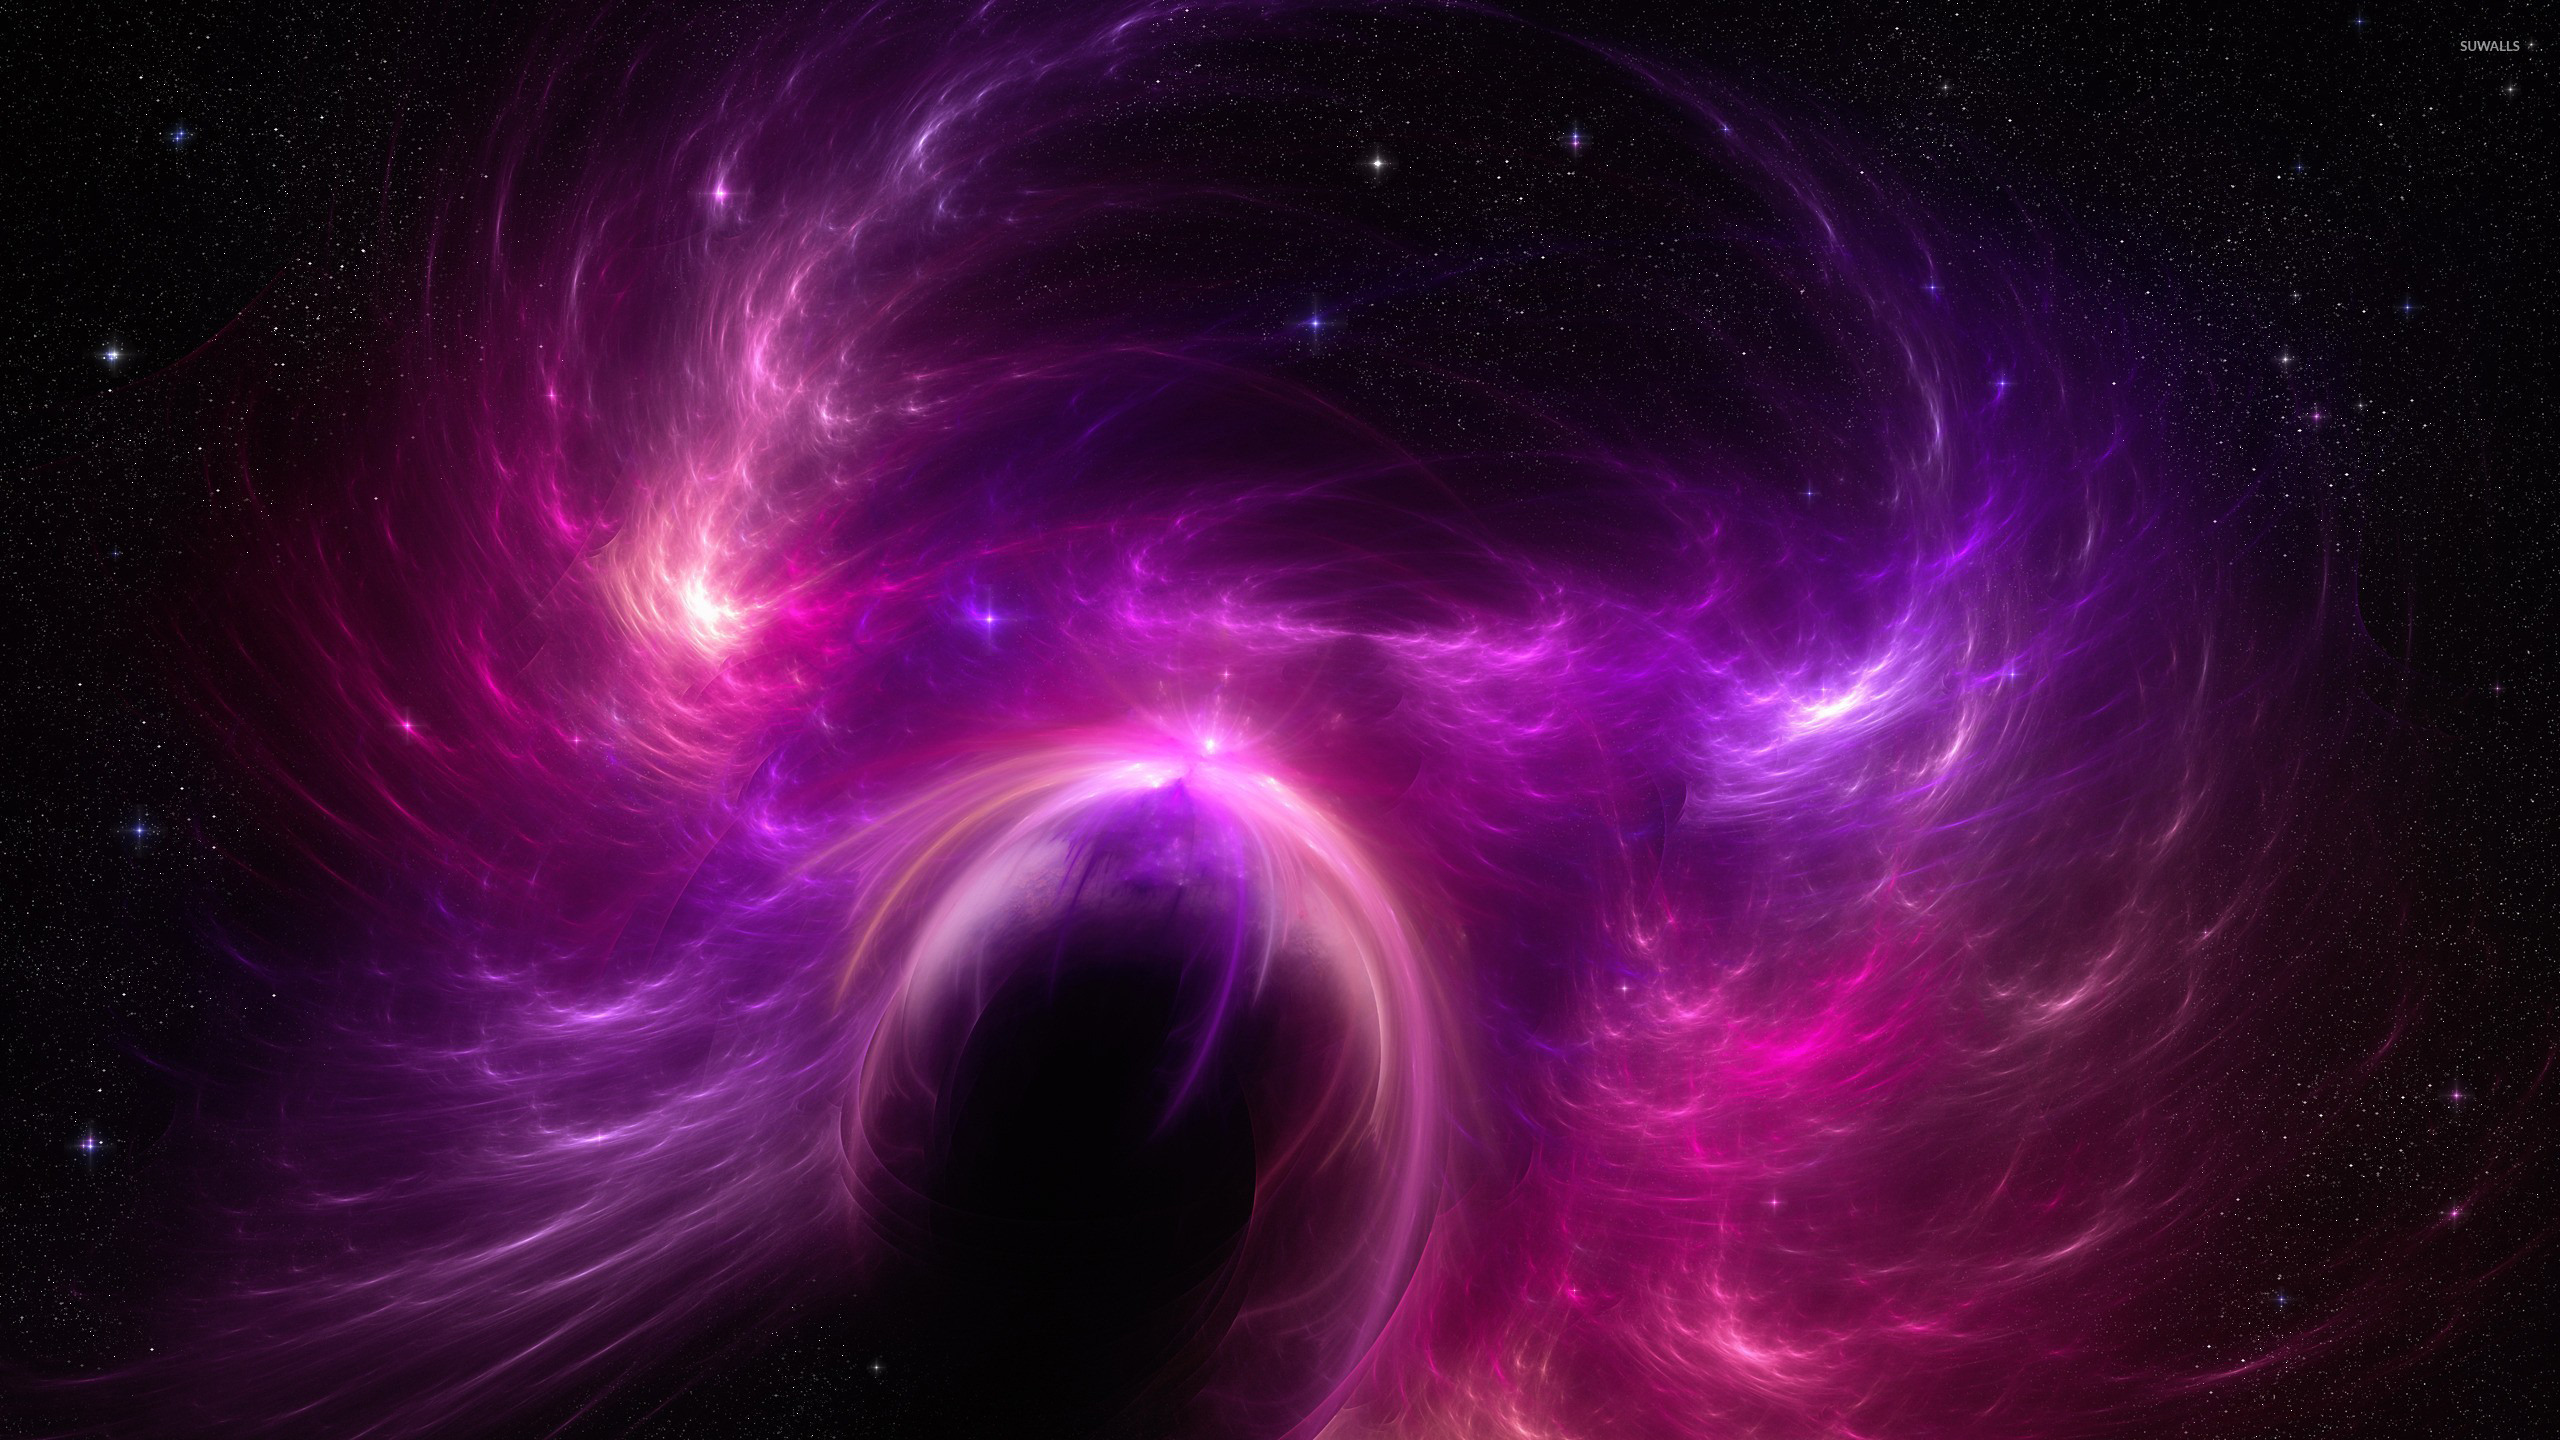 pink and purple nebula - photo #29